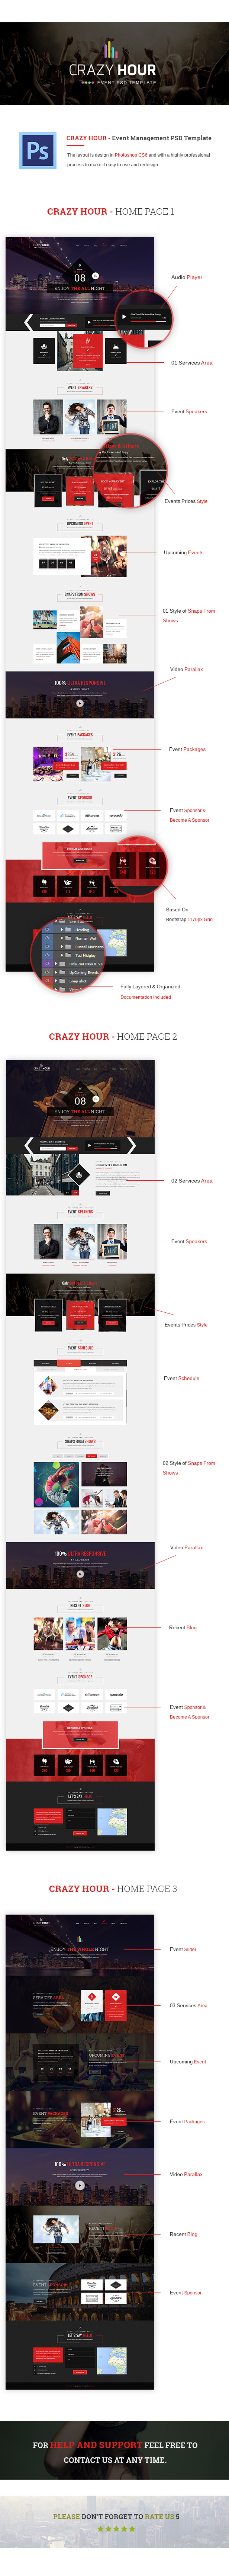 Crazy Hour - Event Management PSD Template